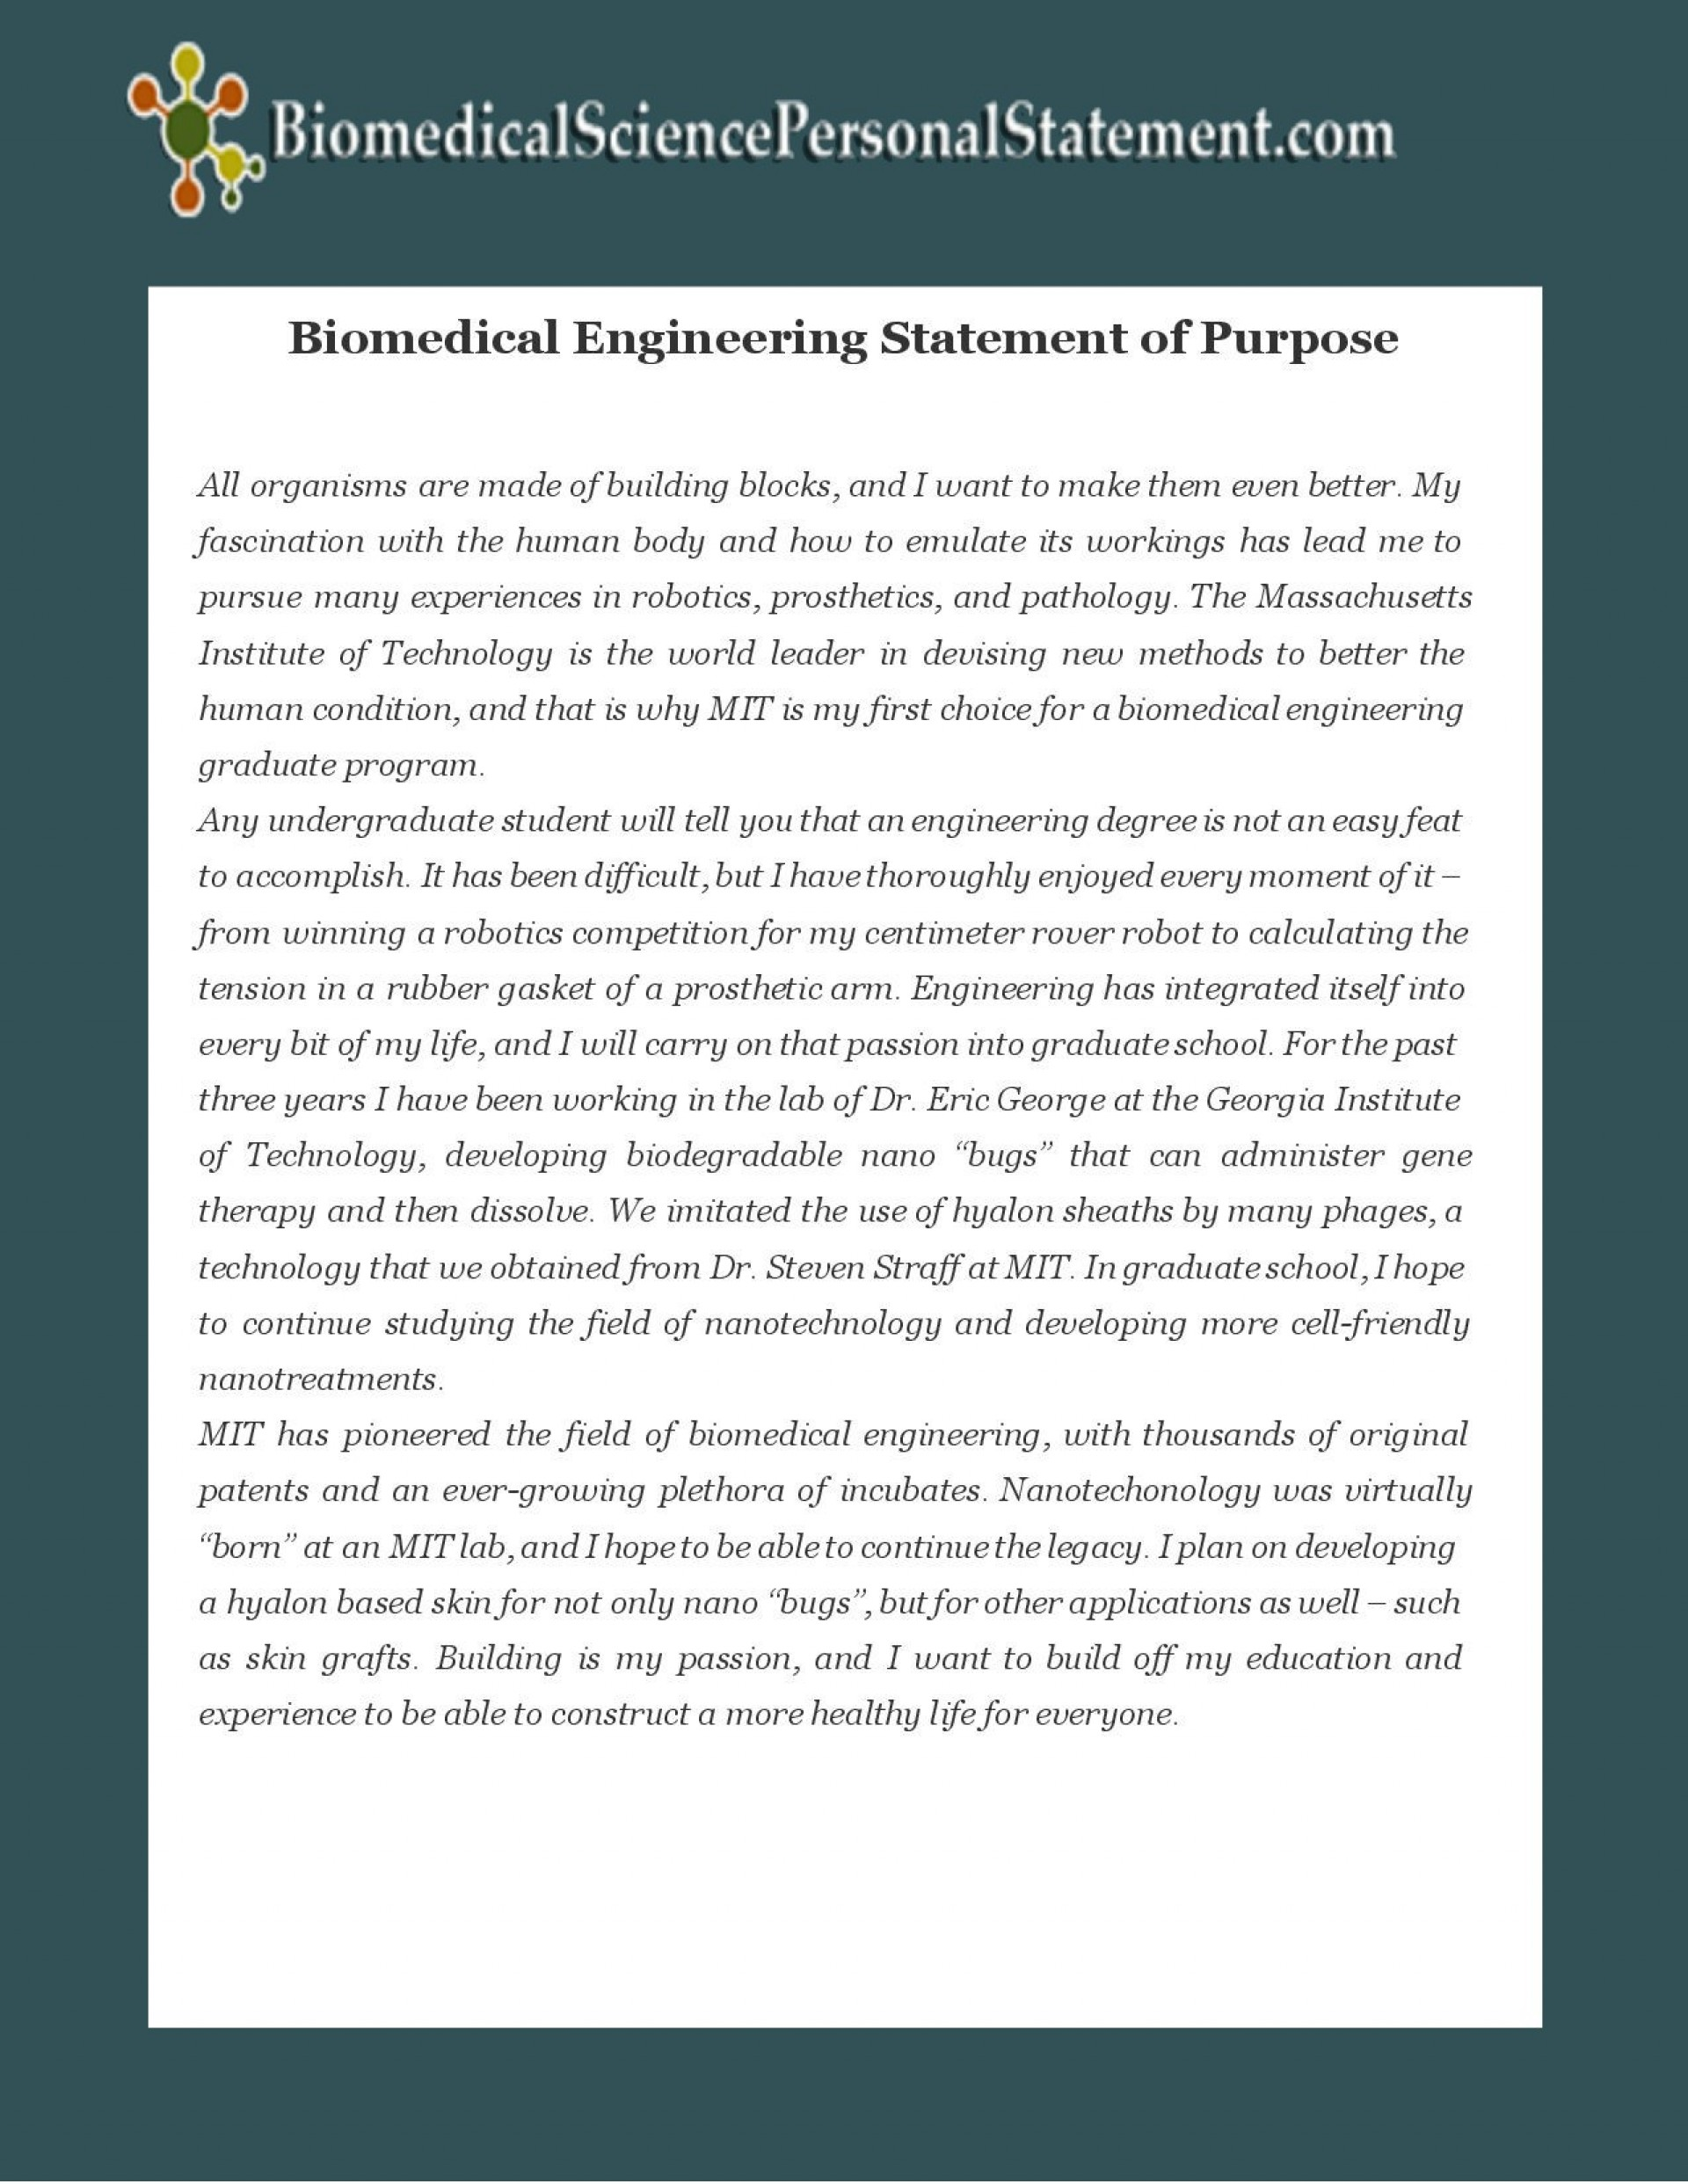 008 Essay Example Engineering Sample Sop For Breathtaking Wvu Contest Topics Texas A&m Length 1920